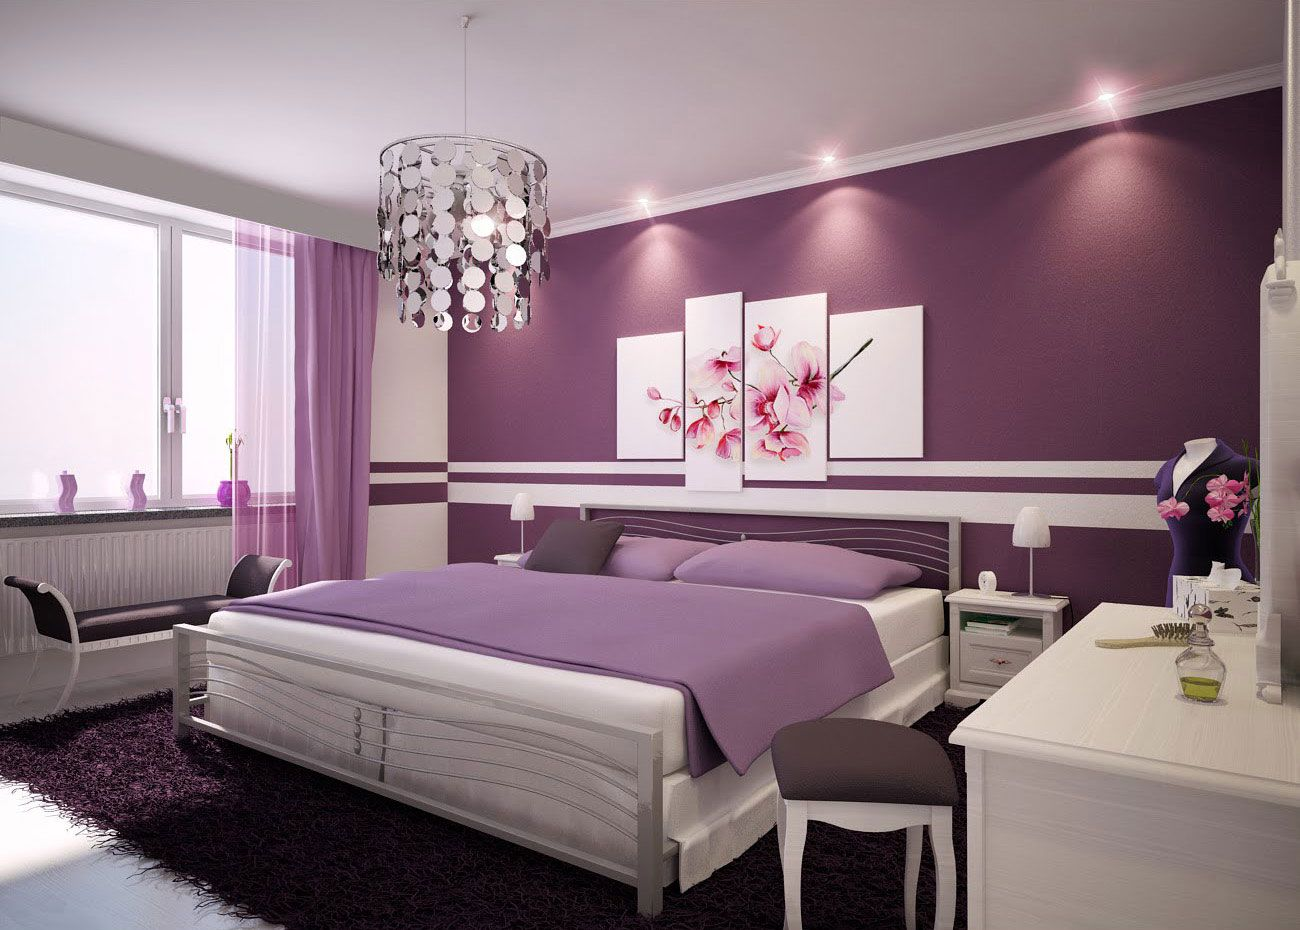 1000+ images about interior designers in bangalore on Pinterest - ^